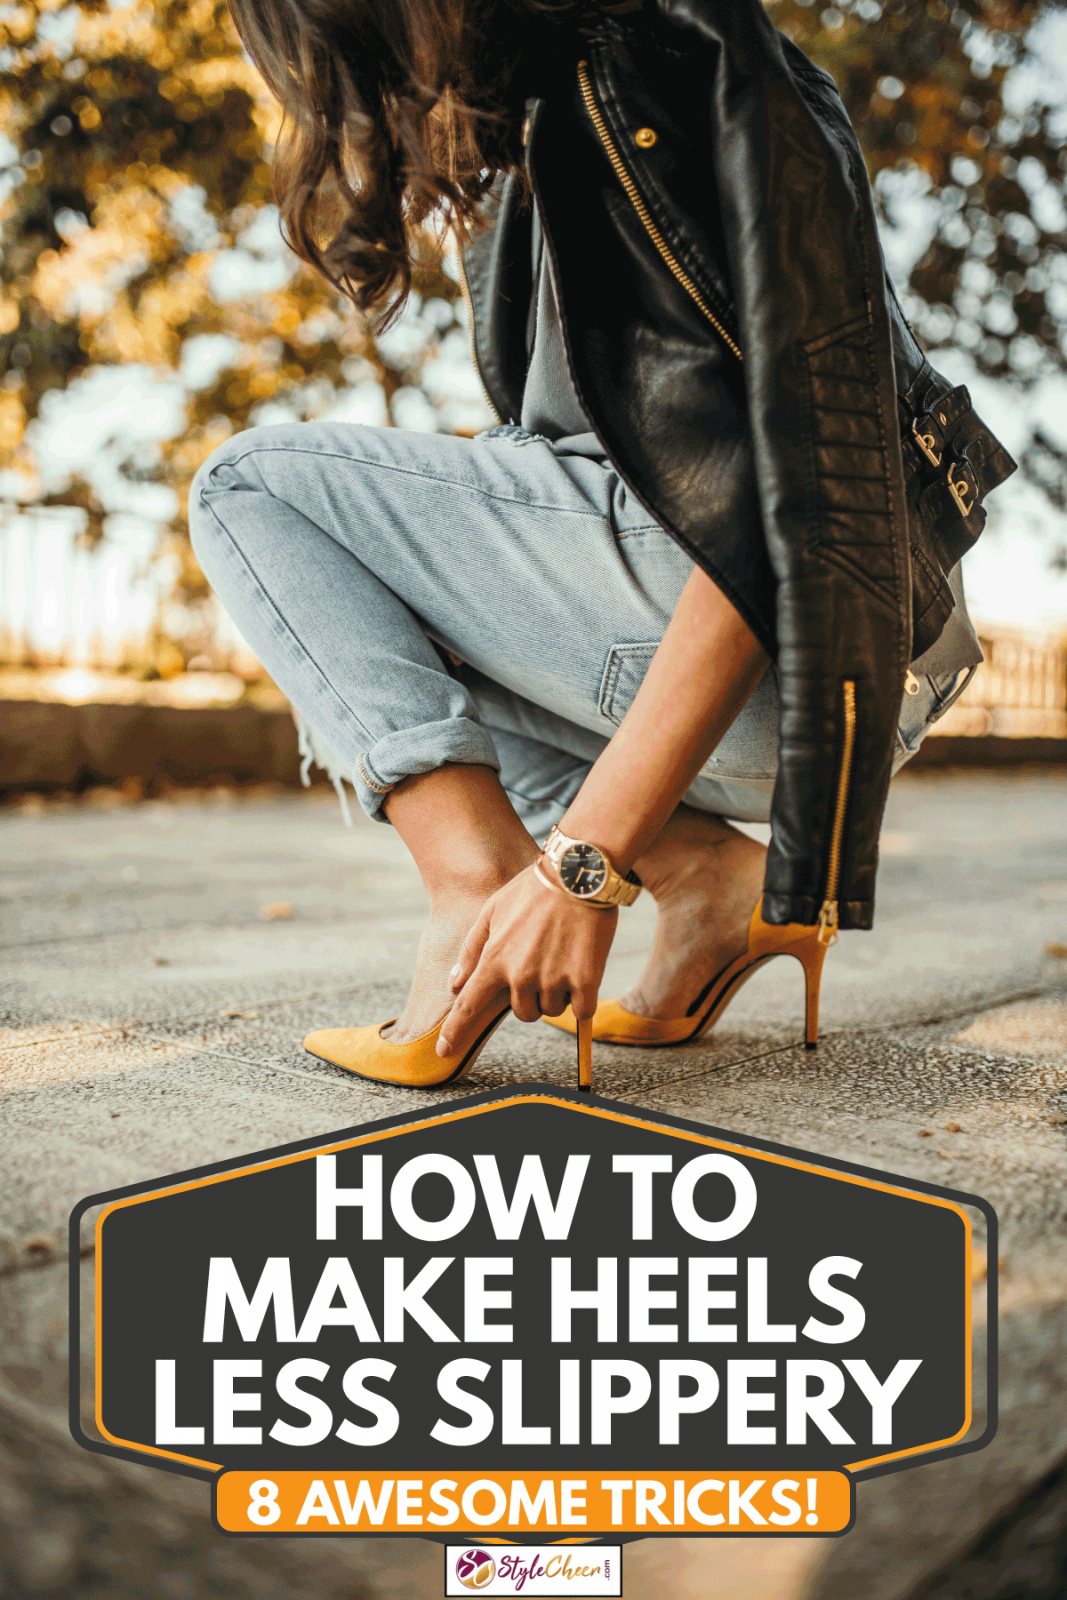 Young woman adjusting her high heel shoes on the pavement, How To Make Heels Less Slippery [8 Awesome Tricks!]